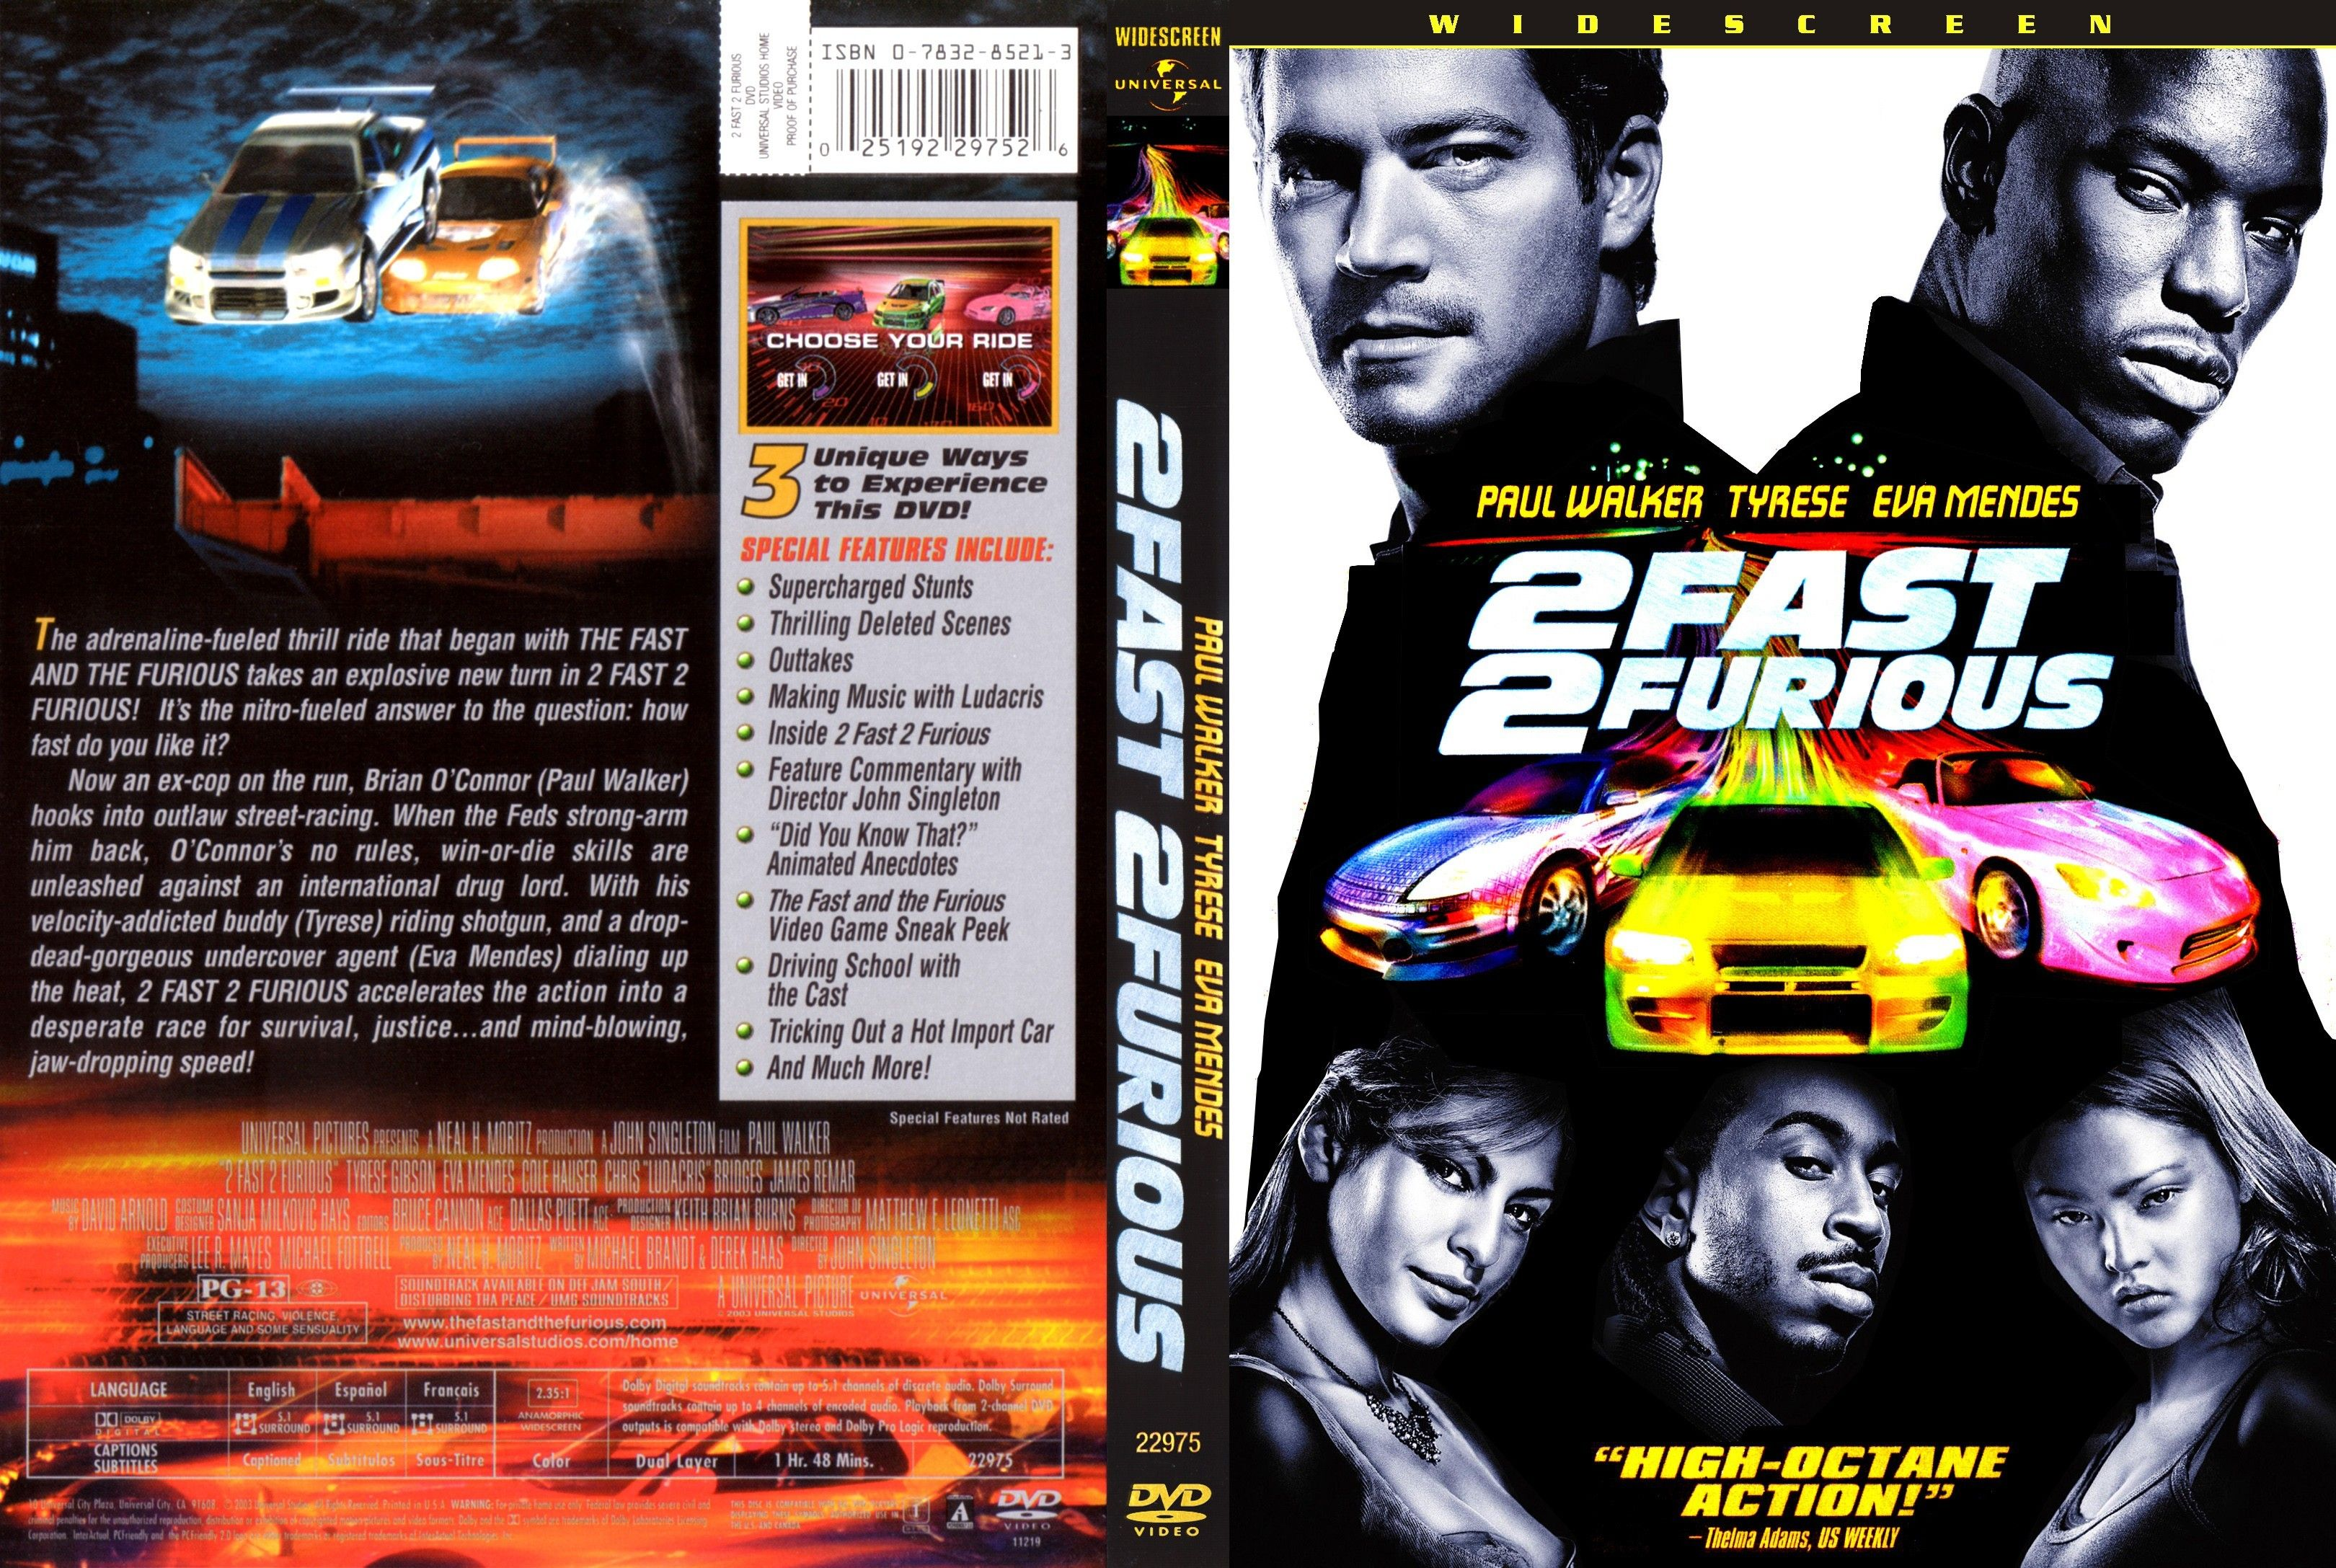 Pictures Of2fast 2 Furious 1 Dvd 2 Fast 2 Furious Dvd Cover